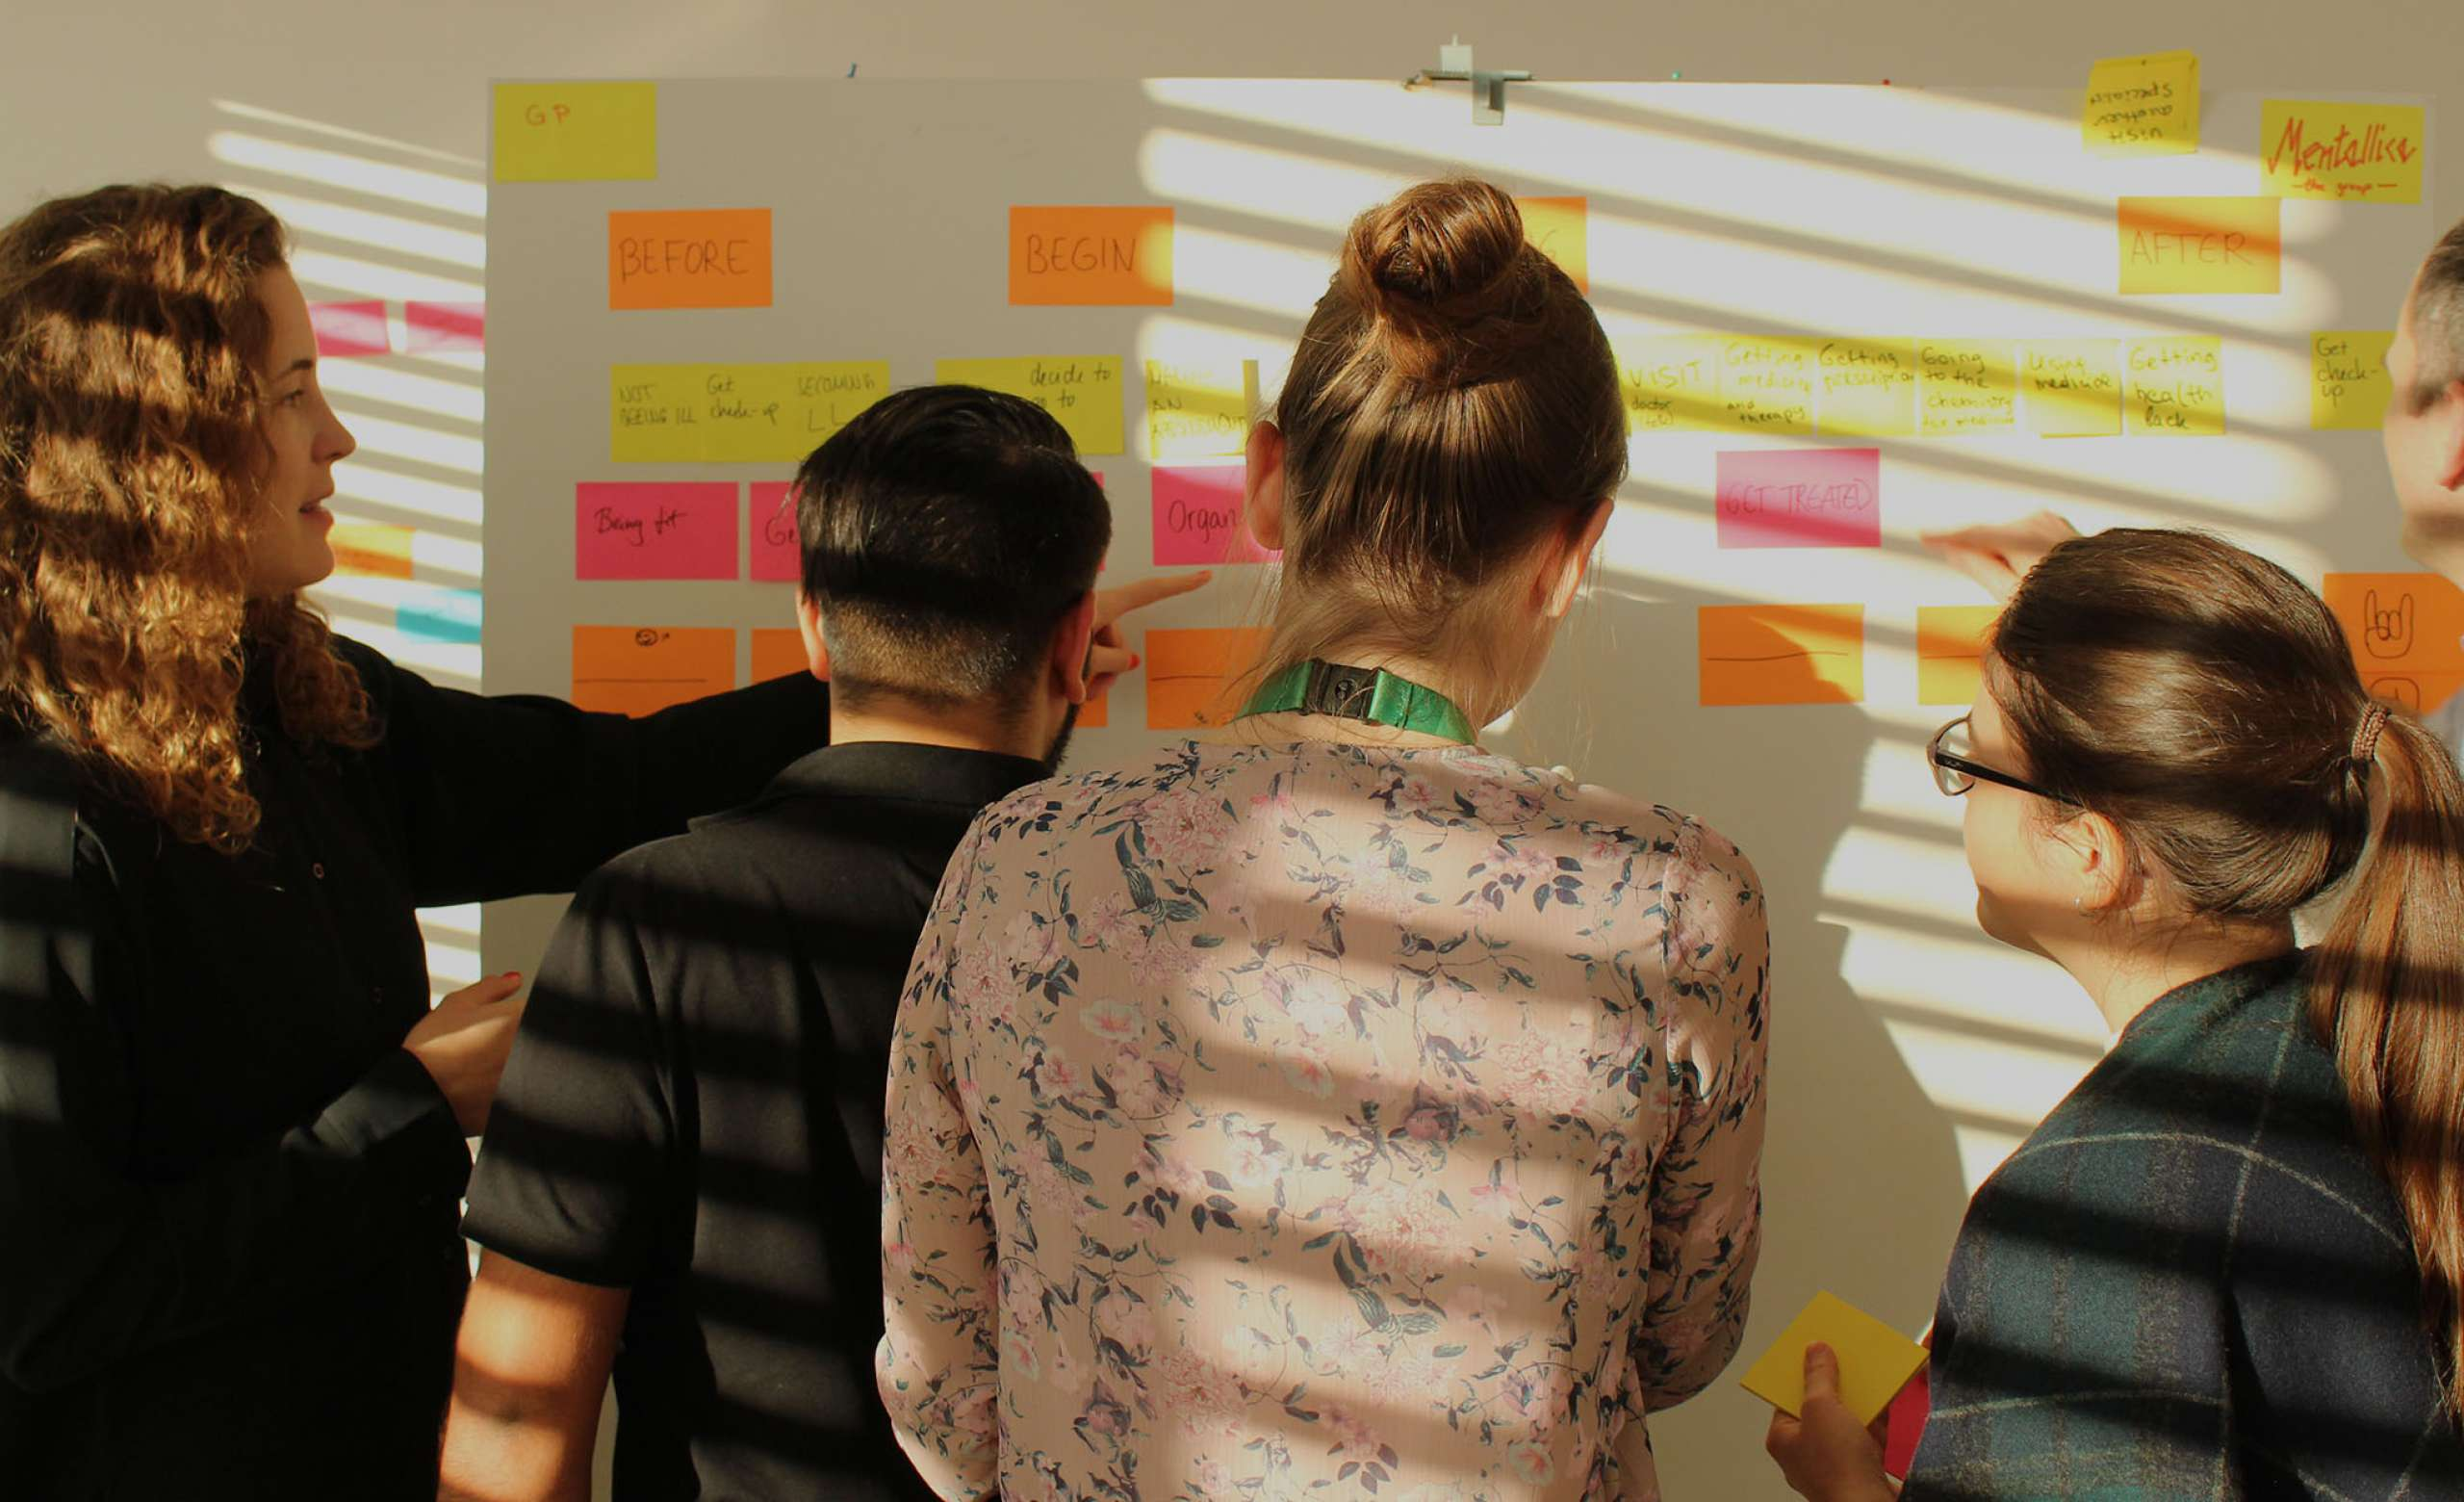 Livework Academy: get service design training at the source. Step up your game.